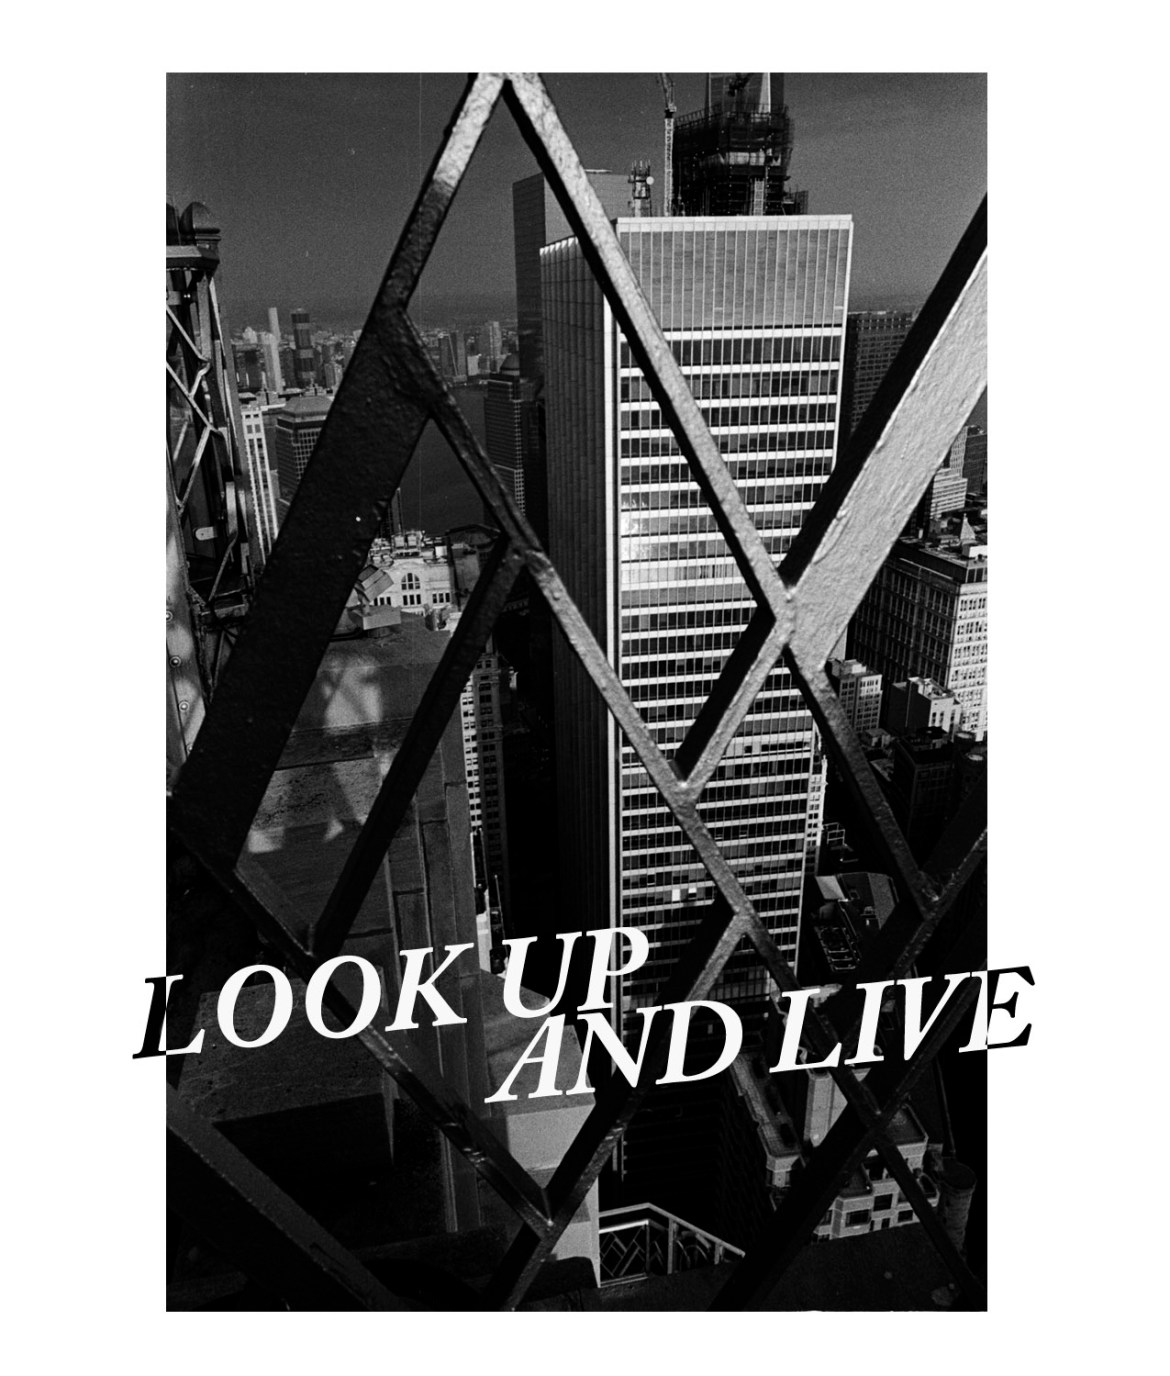 Look Up and Live A1 Web